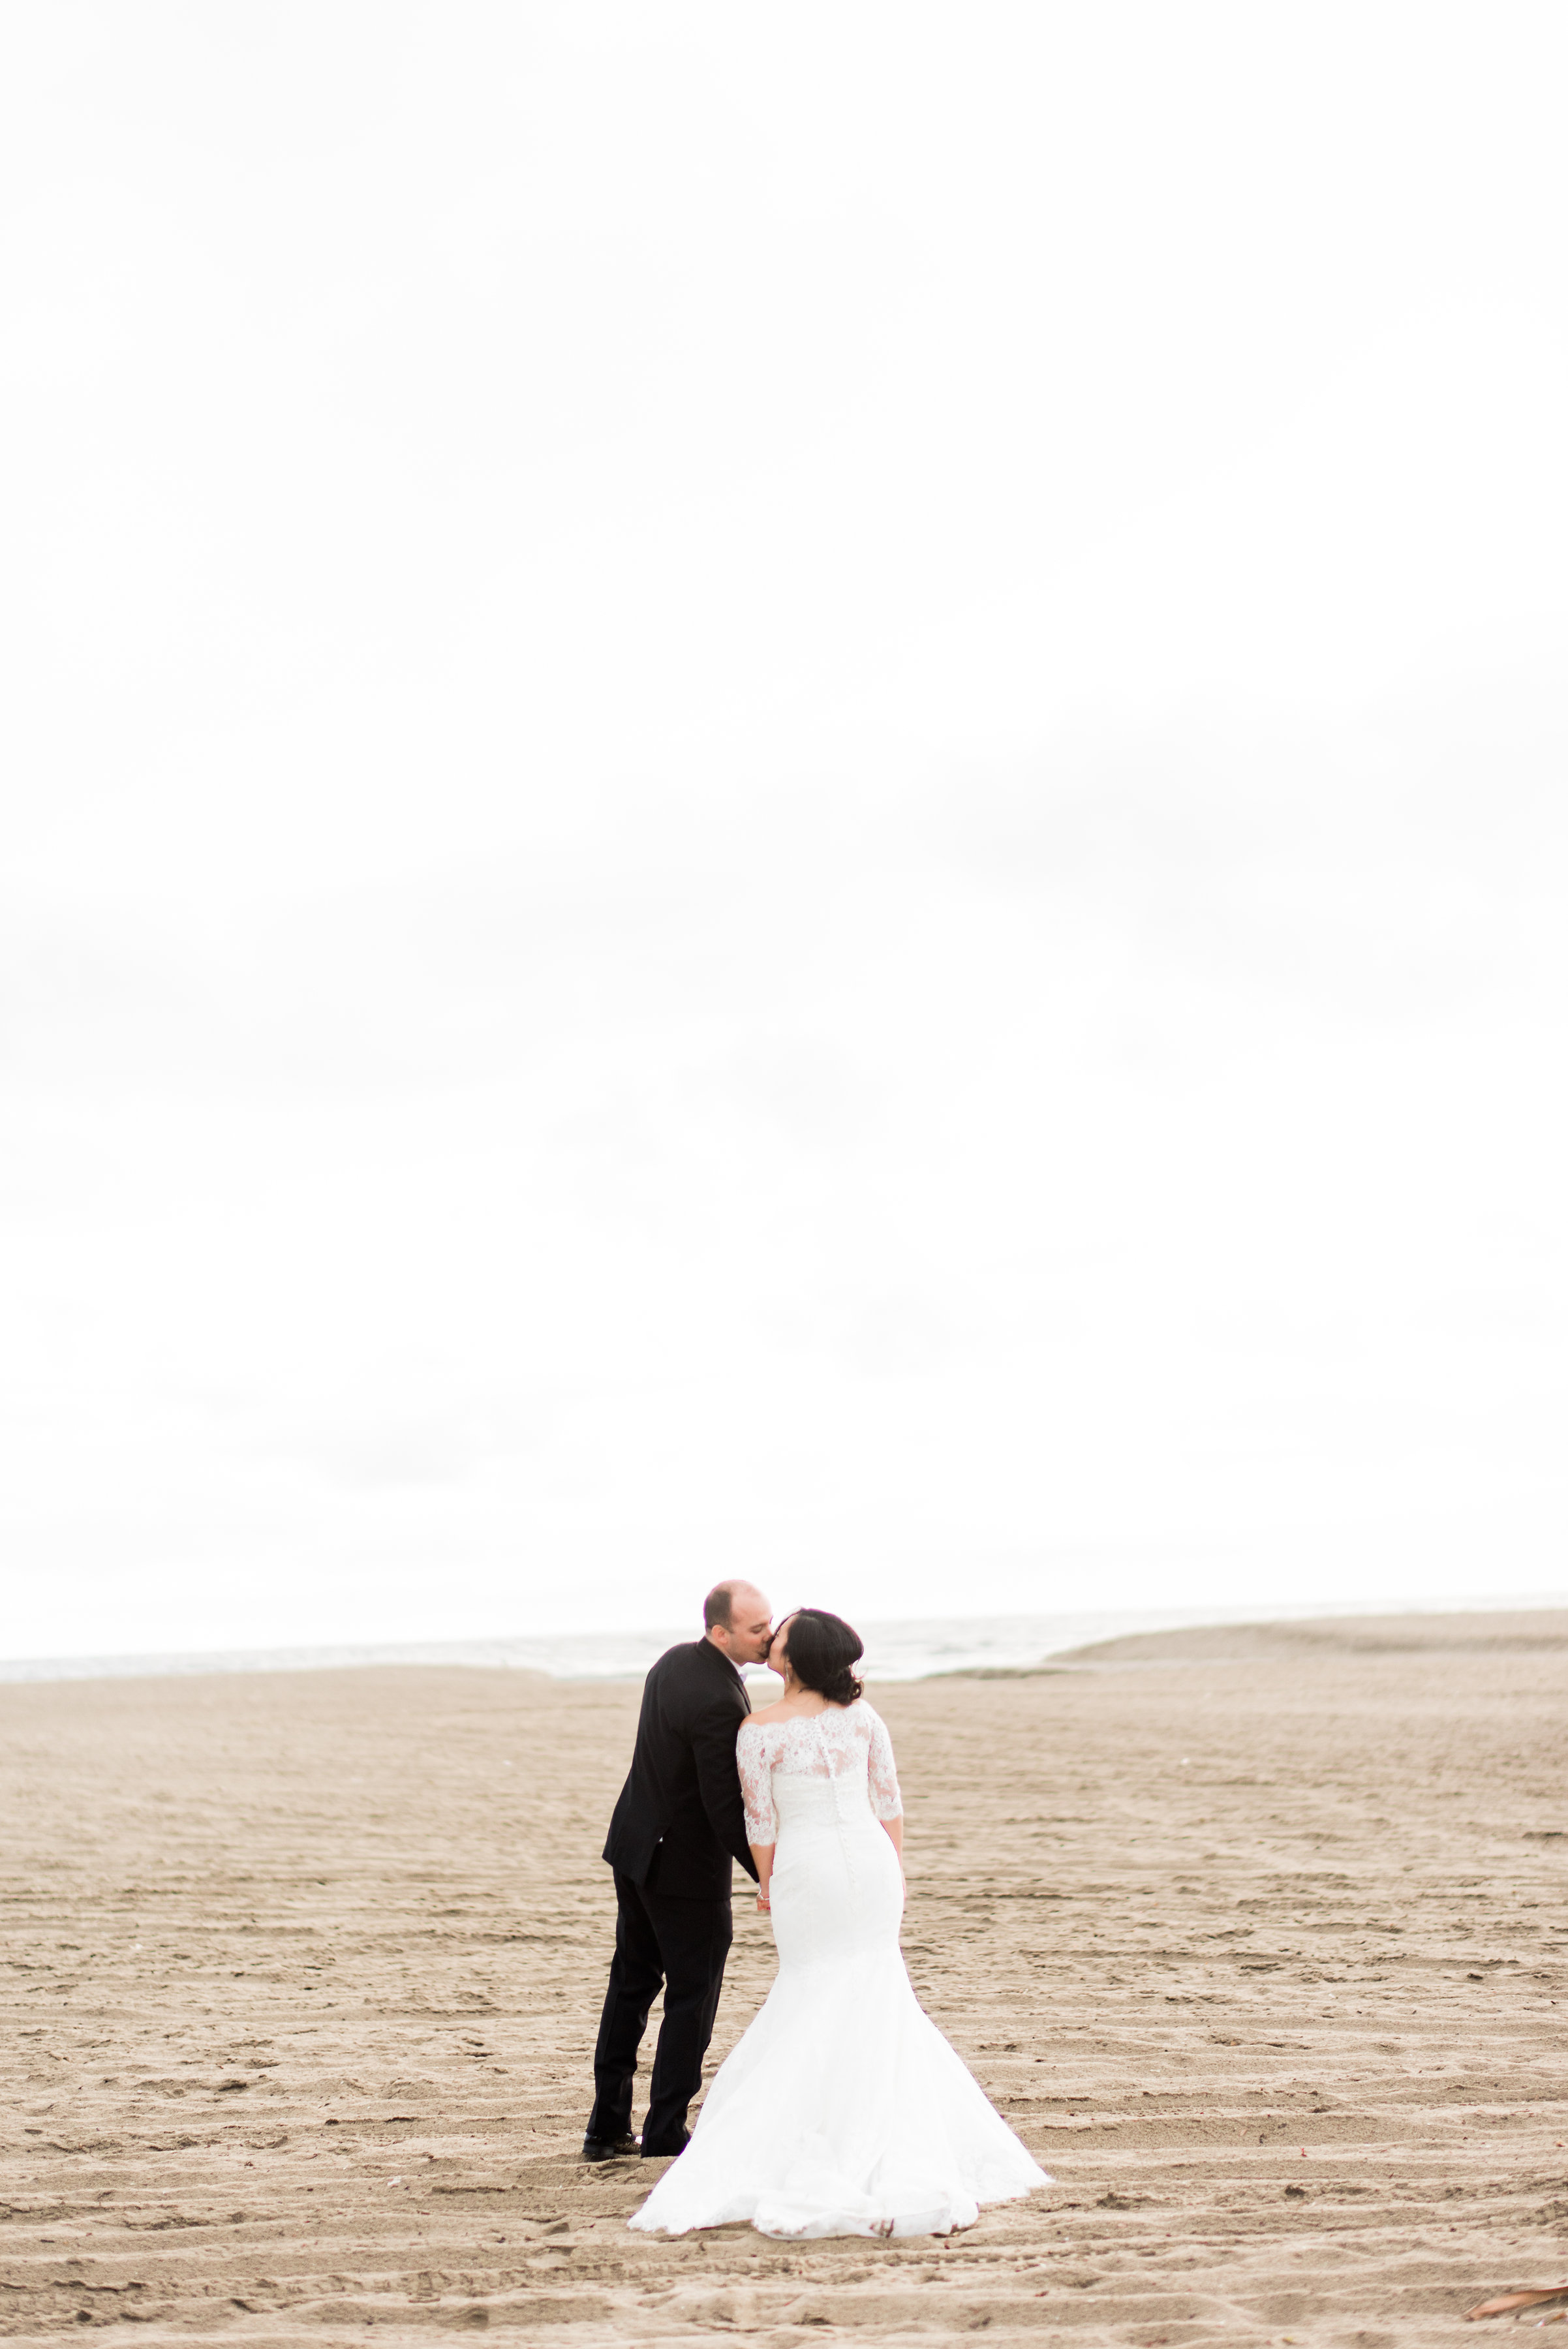 Ashley and brandons wedding at casa del mar hotel photographer sally pinera wedding planner ede by jacqueline flowers chloe mint venue catering casa del mar hotel wedding dress martina ombrellifo Image collections